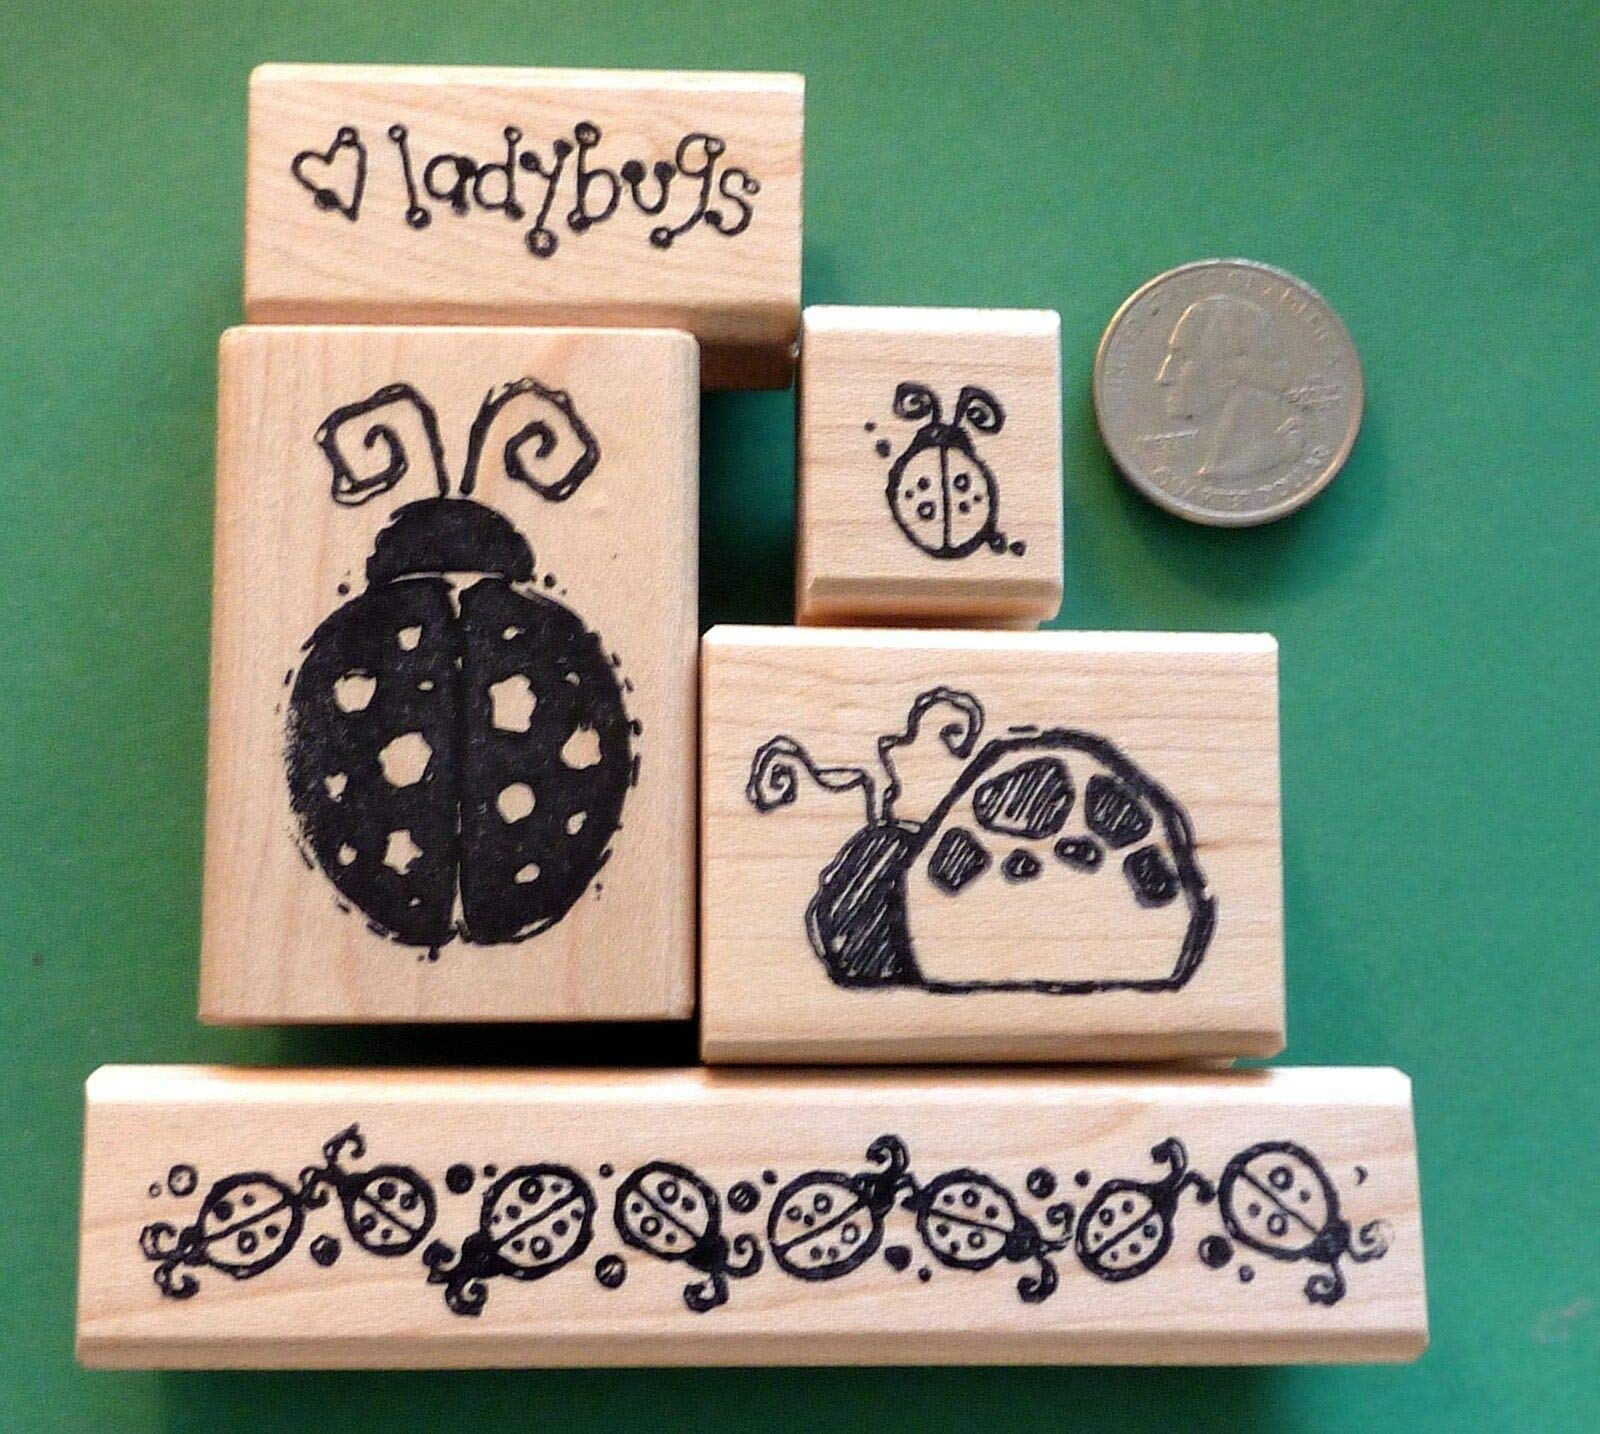 Quality Custom Rubber Stamps Ladybug Lover's Rubber Stamp Set of 5, Wood Mounted Carved Wooden Stamps